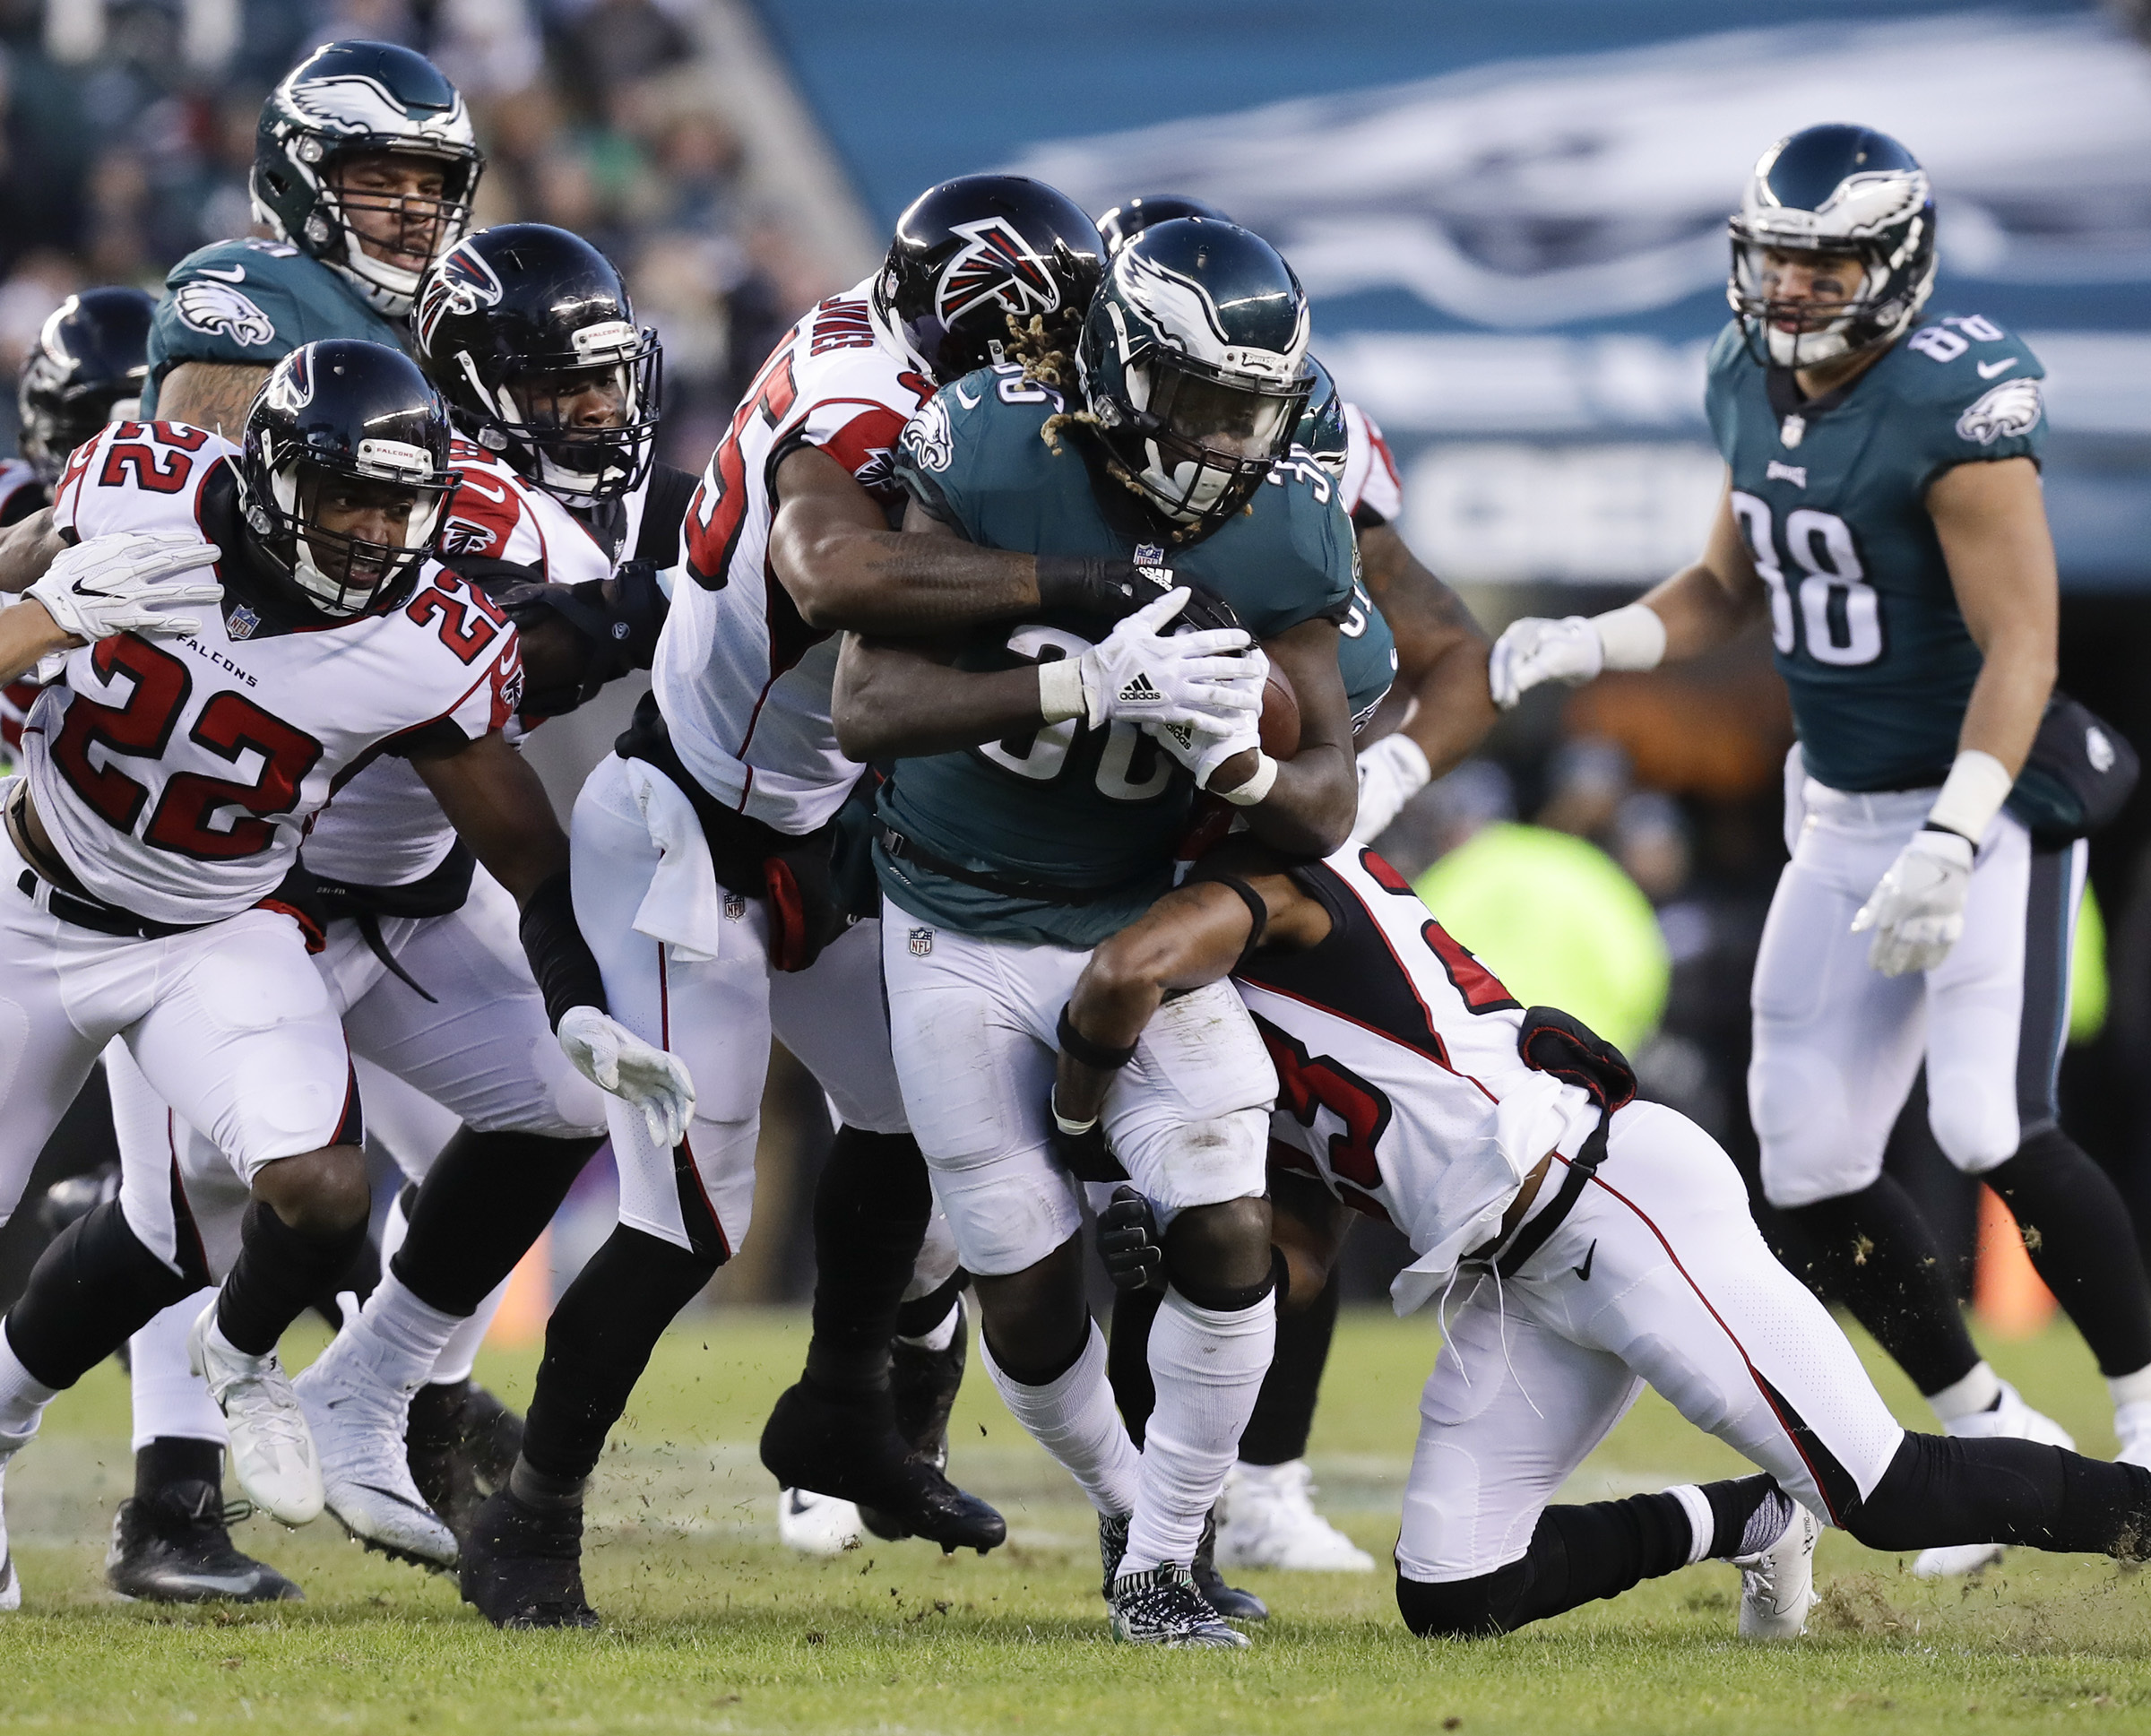 Eagles running back Jay Ajayi runs with the football against the Atlanta Falcons in a NFC Divisional Playoff game on Saturday, January 13, 2018 in Philadelphia.